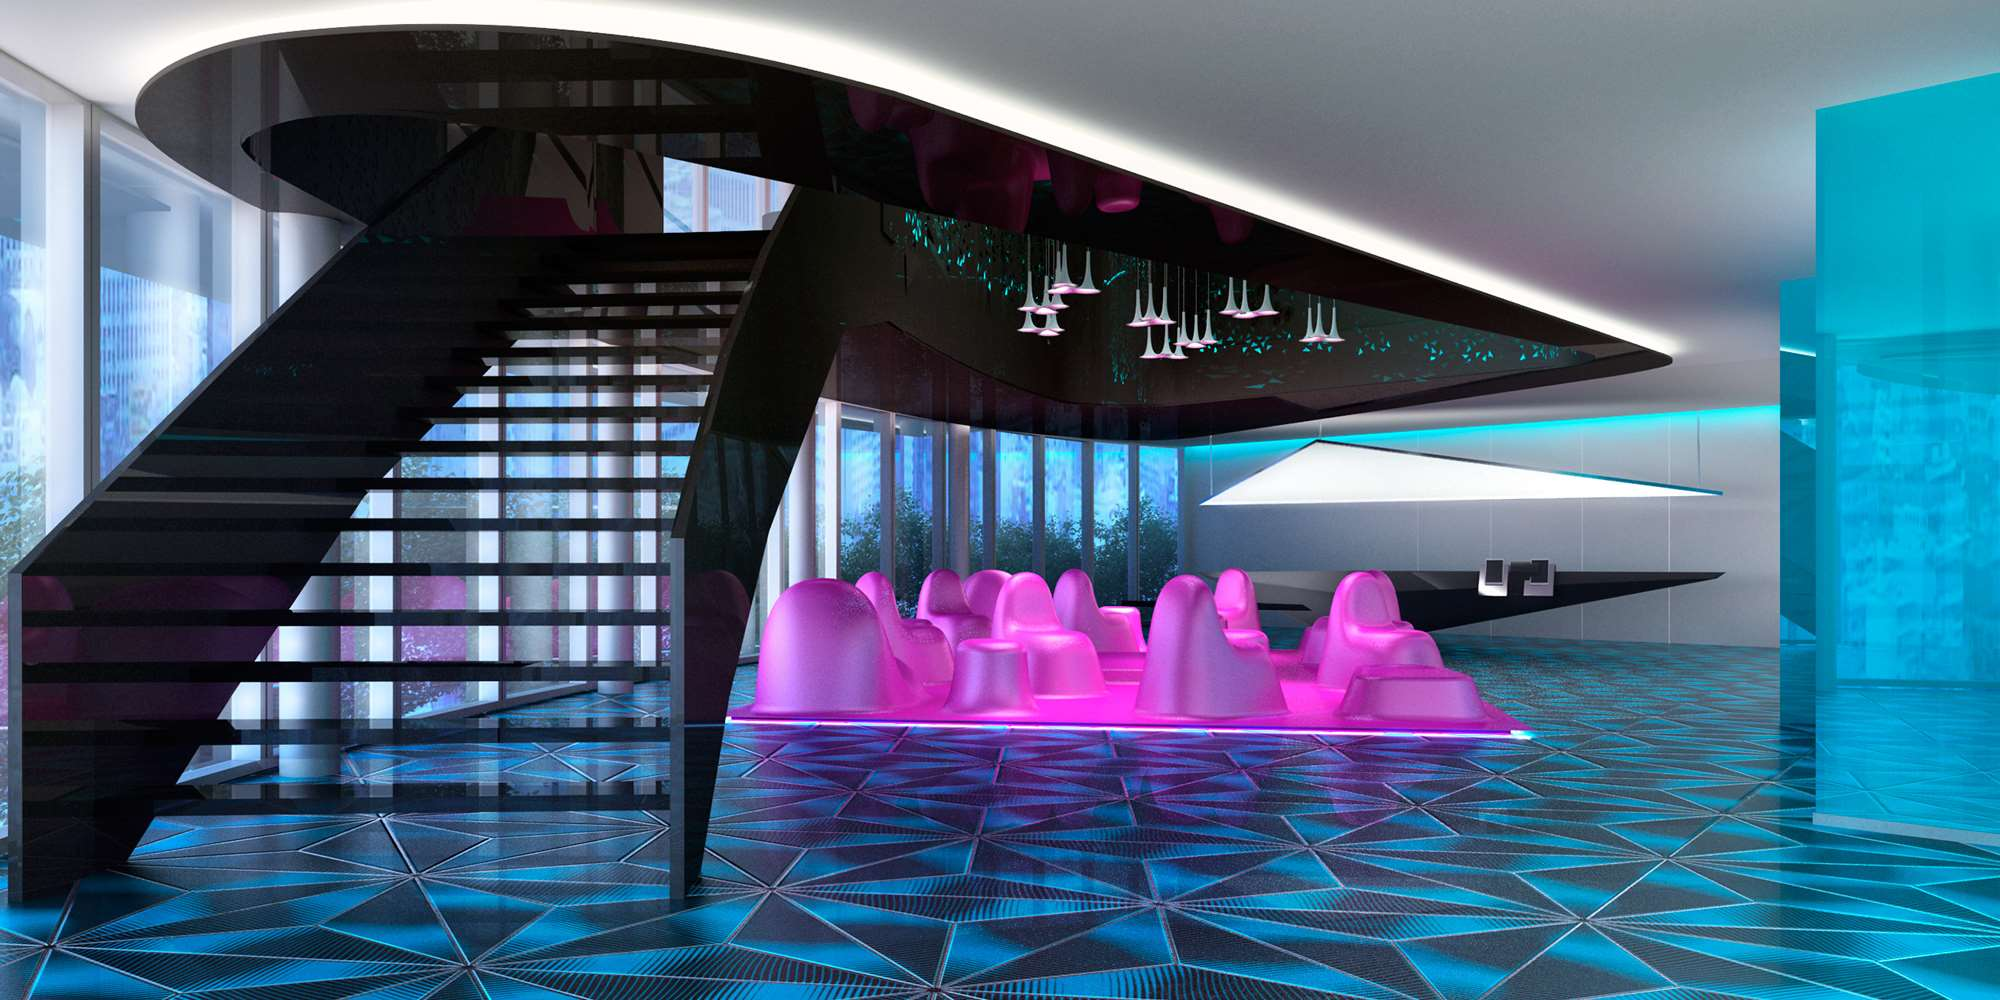 Karim Rashid A new Magic Design Hotel in Norway: Decór by Karim Rashid transferir 2